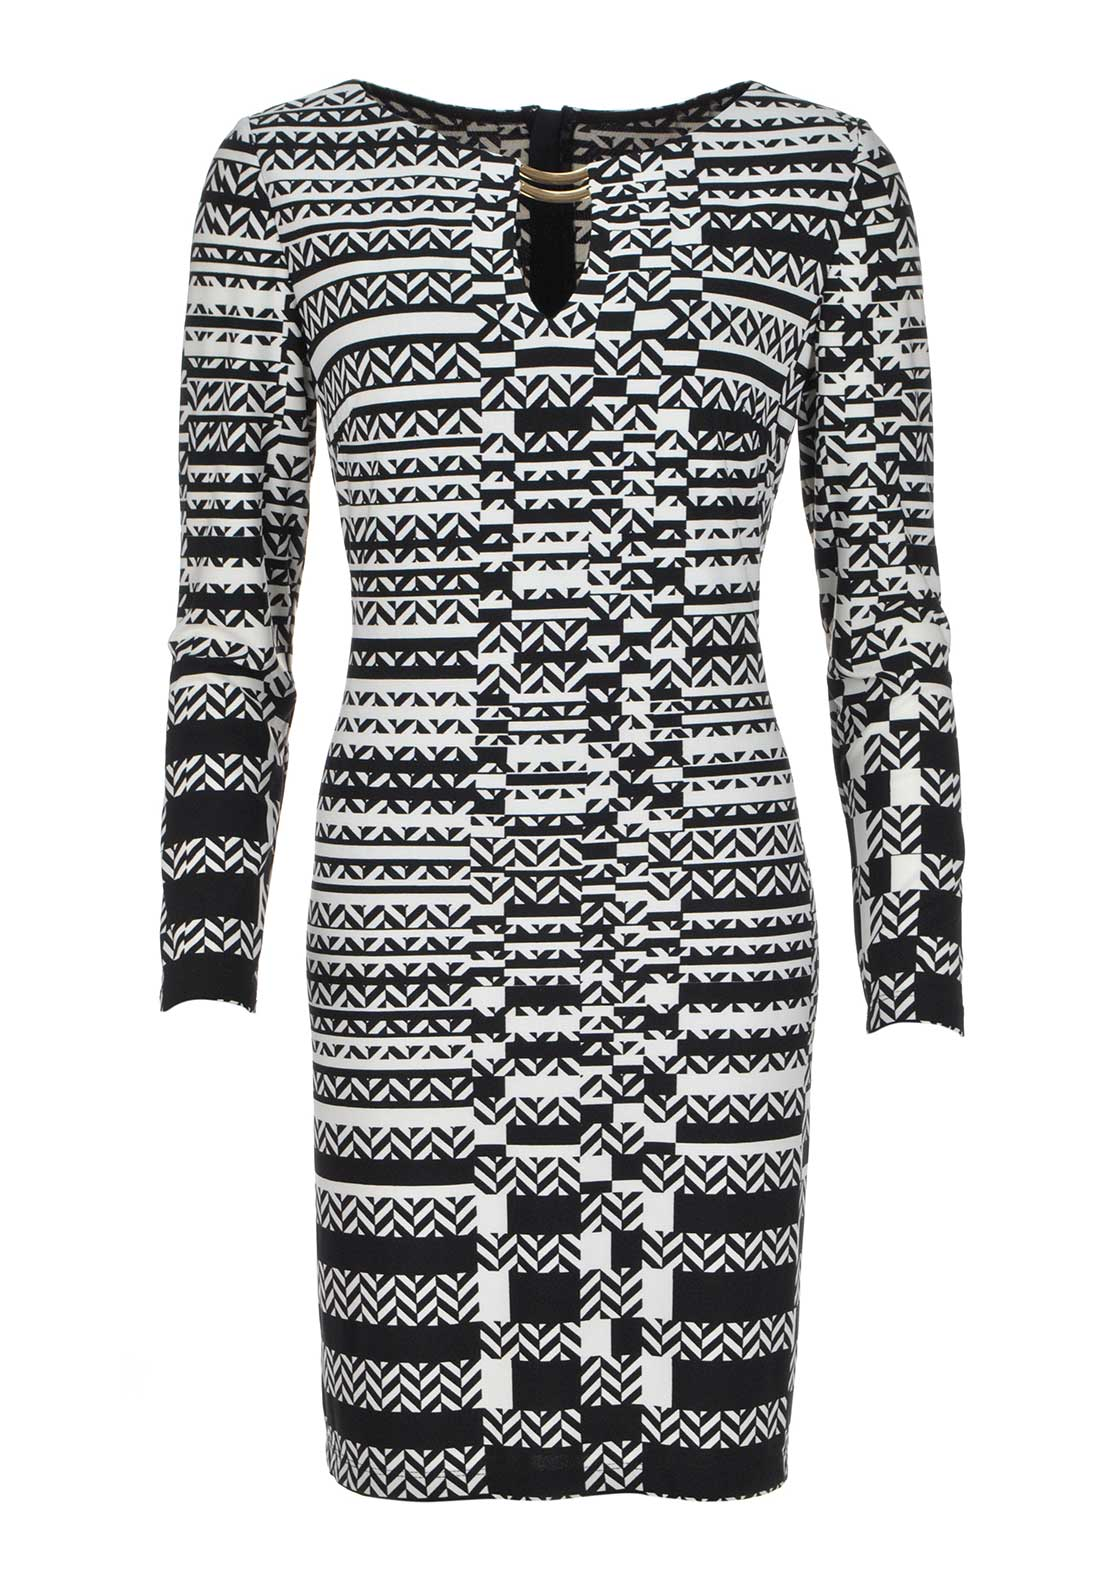 Joseph Ribkoff Geometric Print Long Sleeve Tunic Dress, Black and Cream